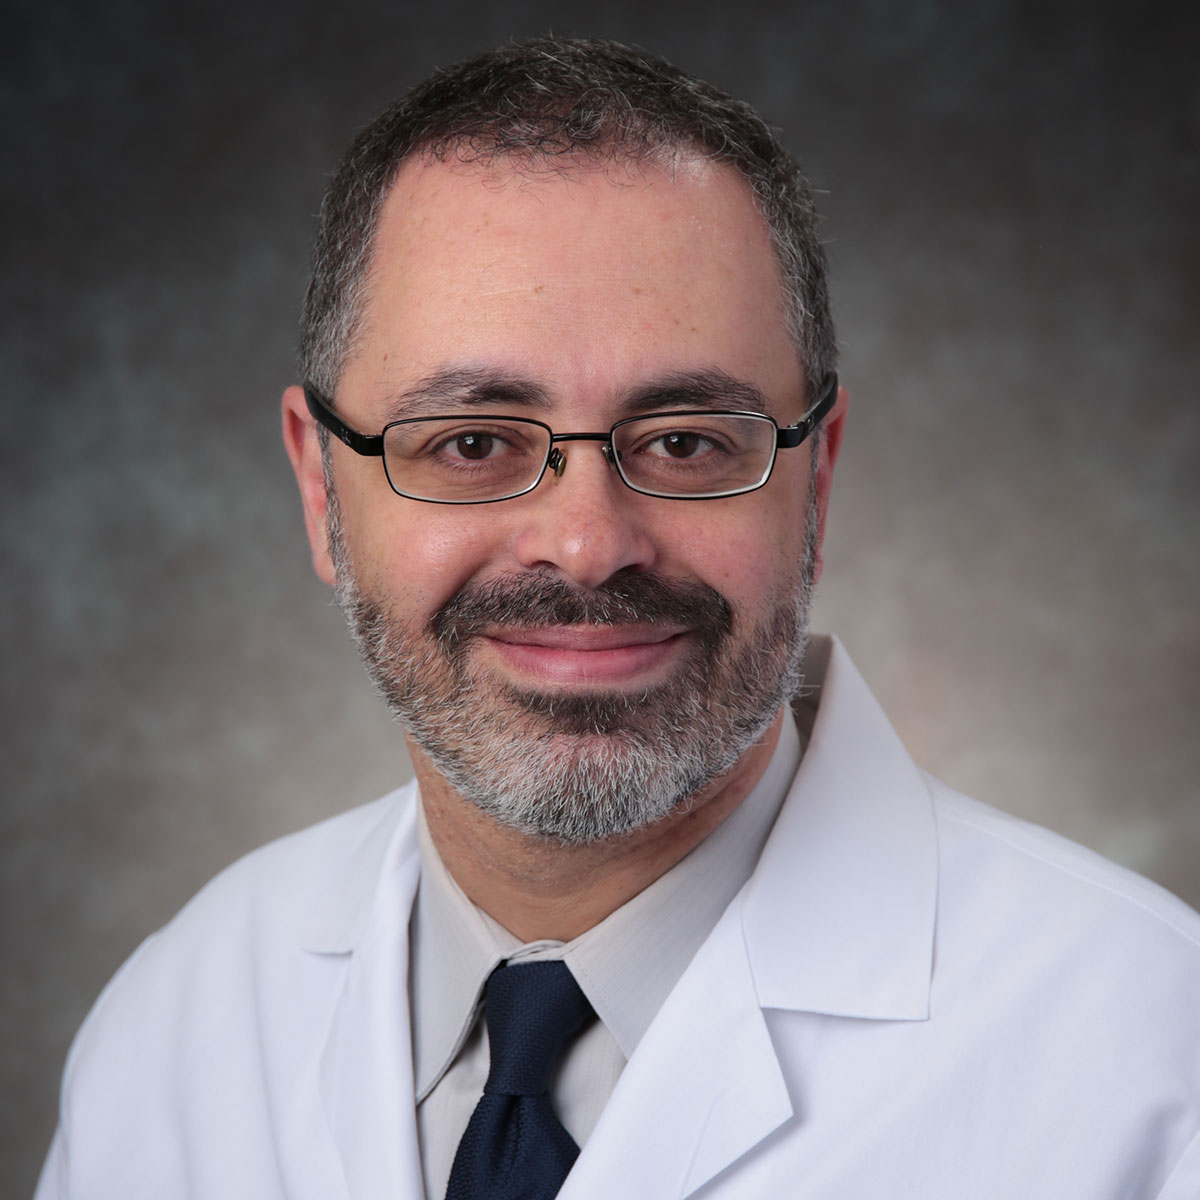 A friendly headshot of Dr. Maged Doss